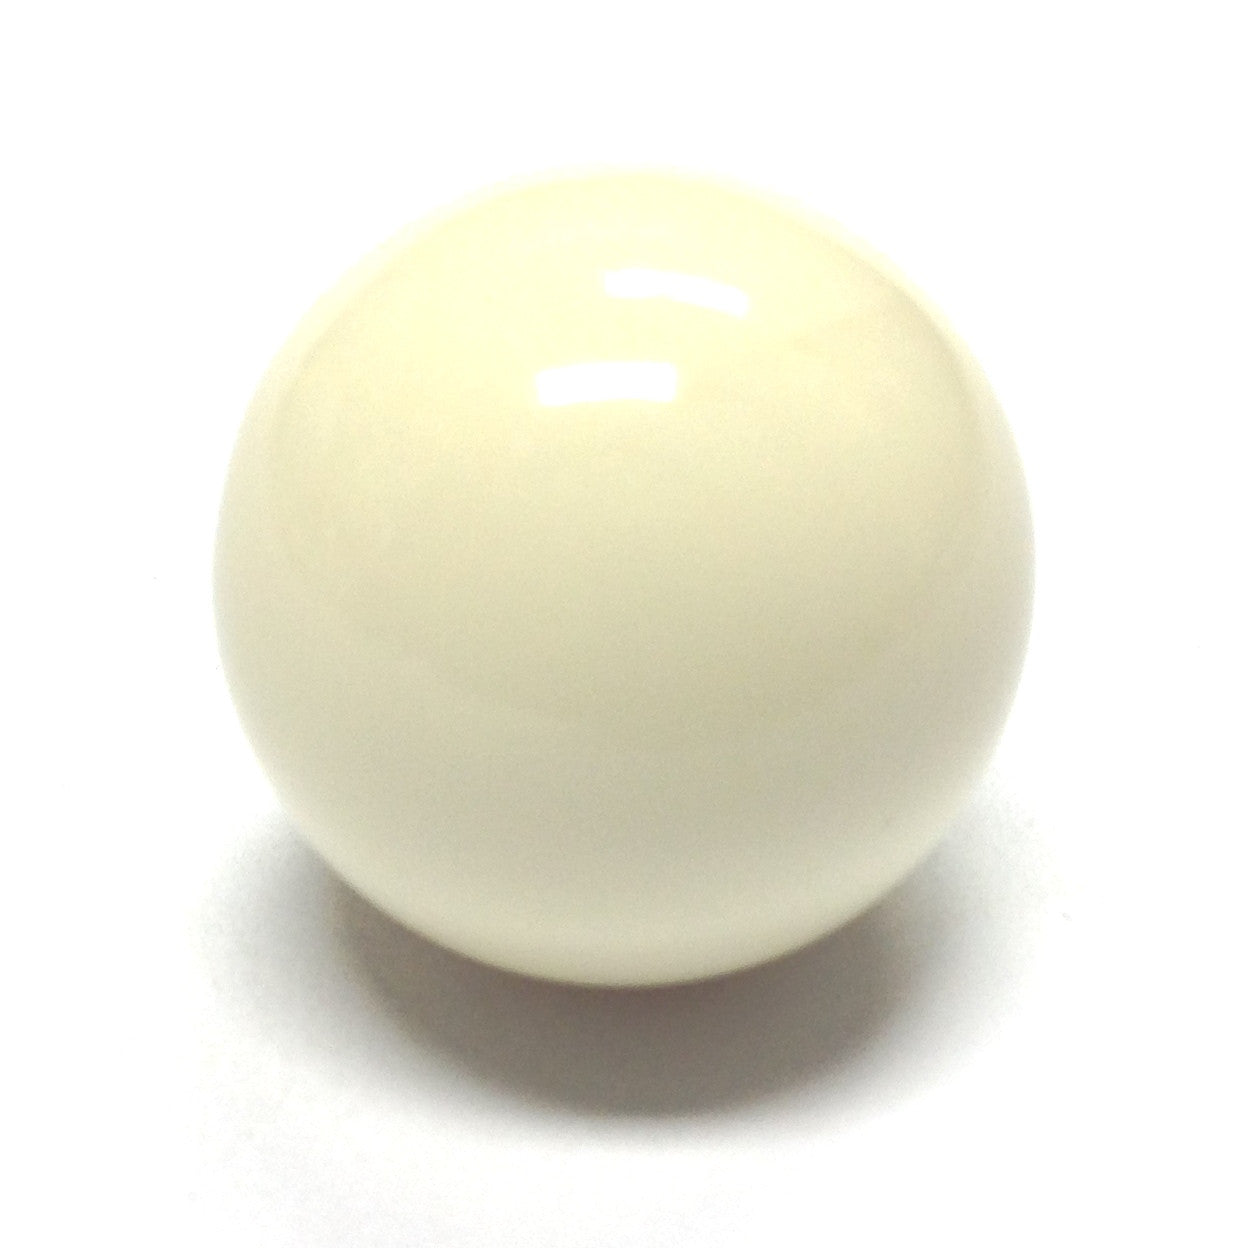 6MM Ivory Acrylic Round Bead (300 pieces)